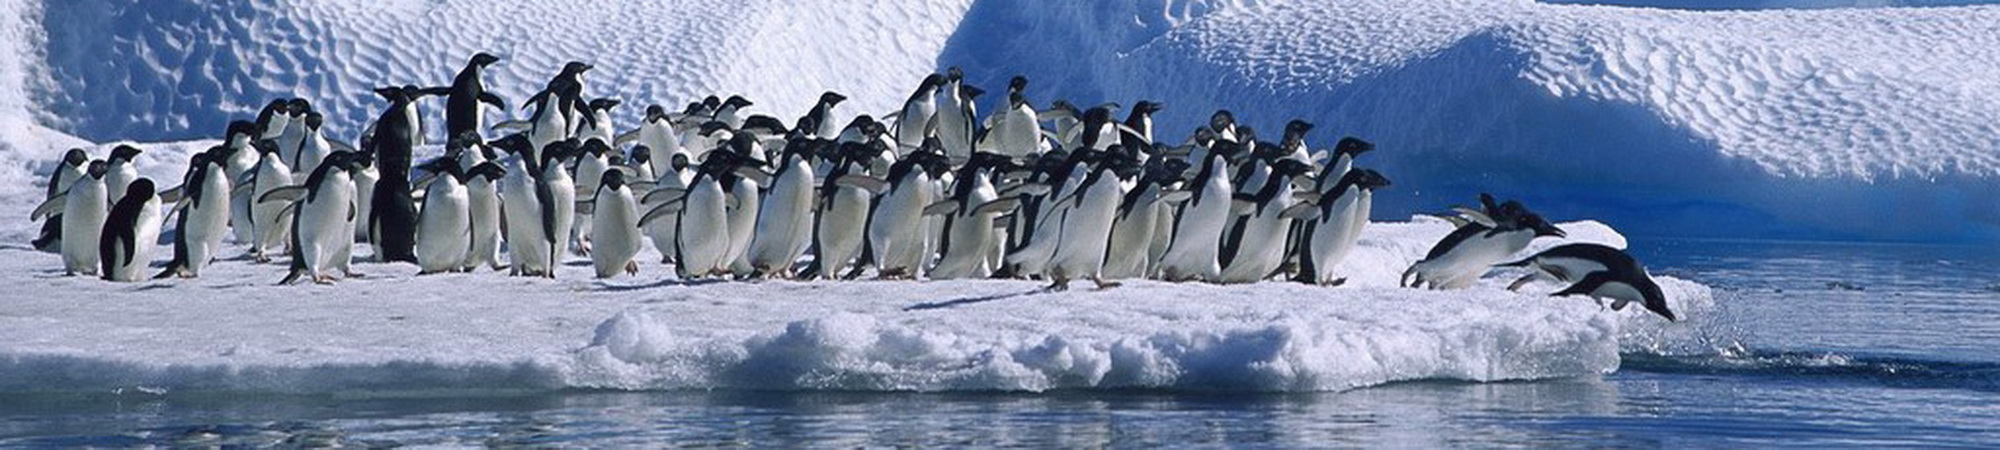 Antartica-penguins